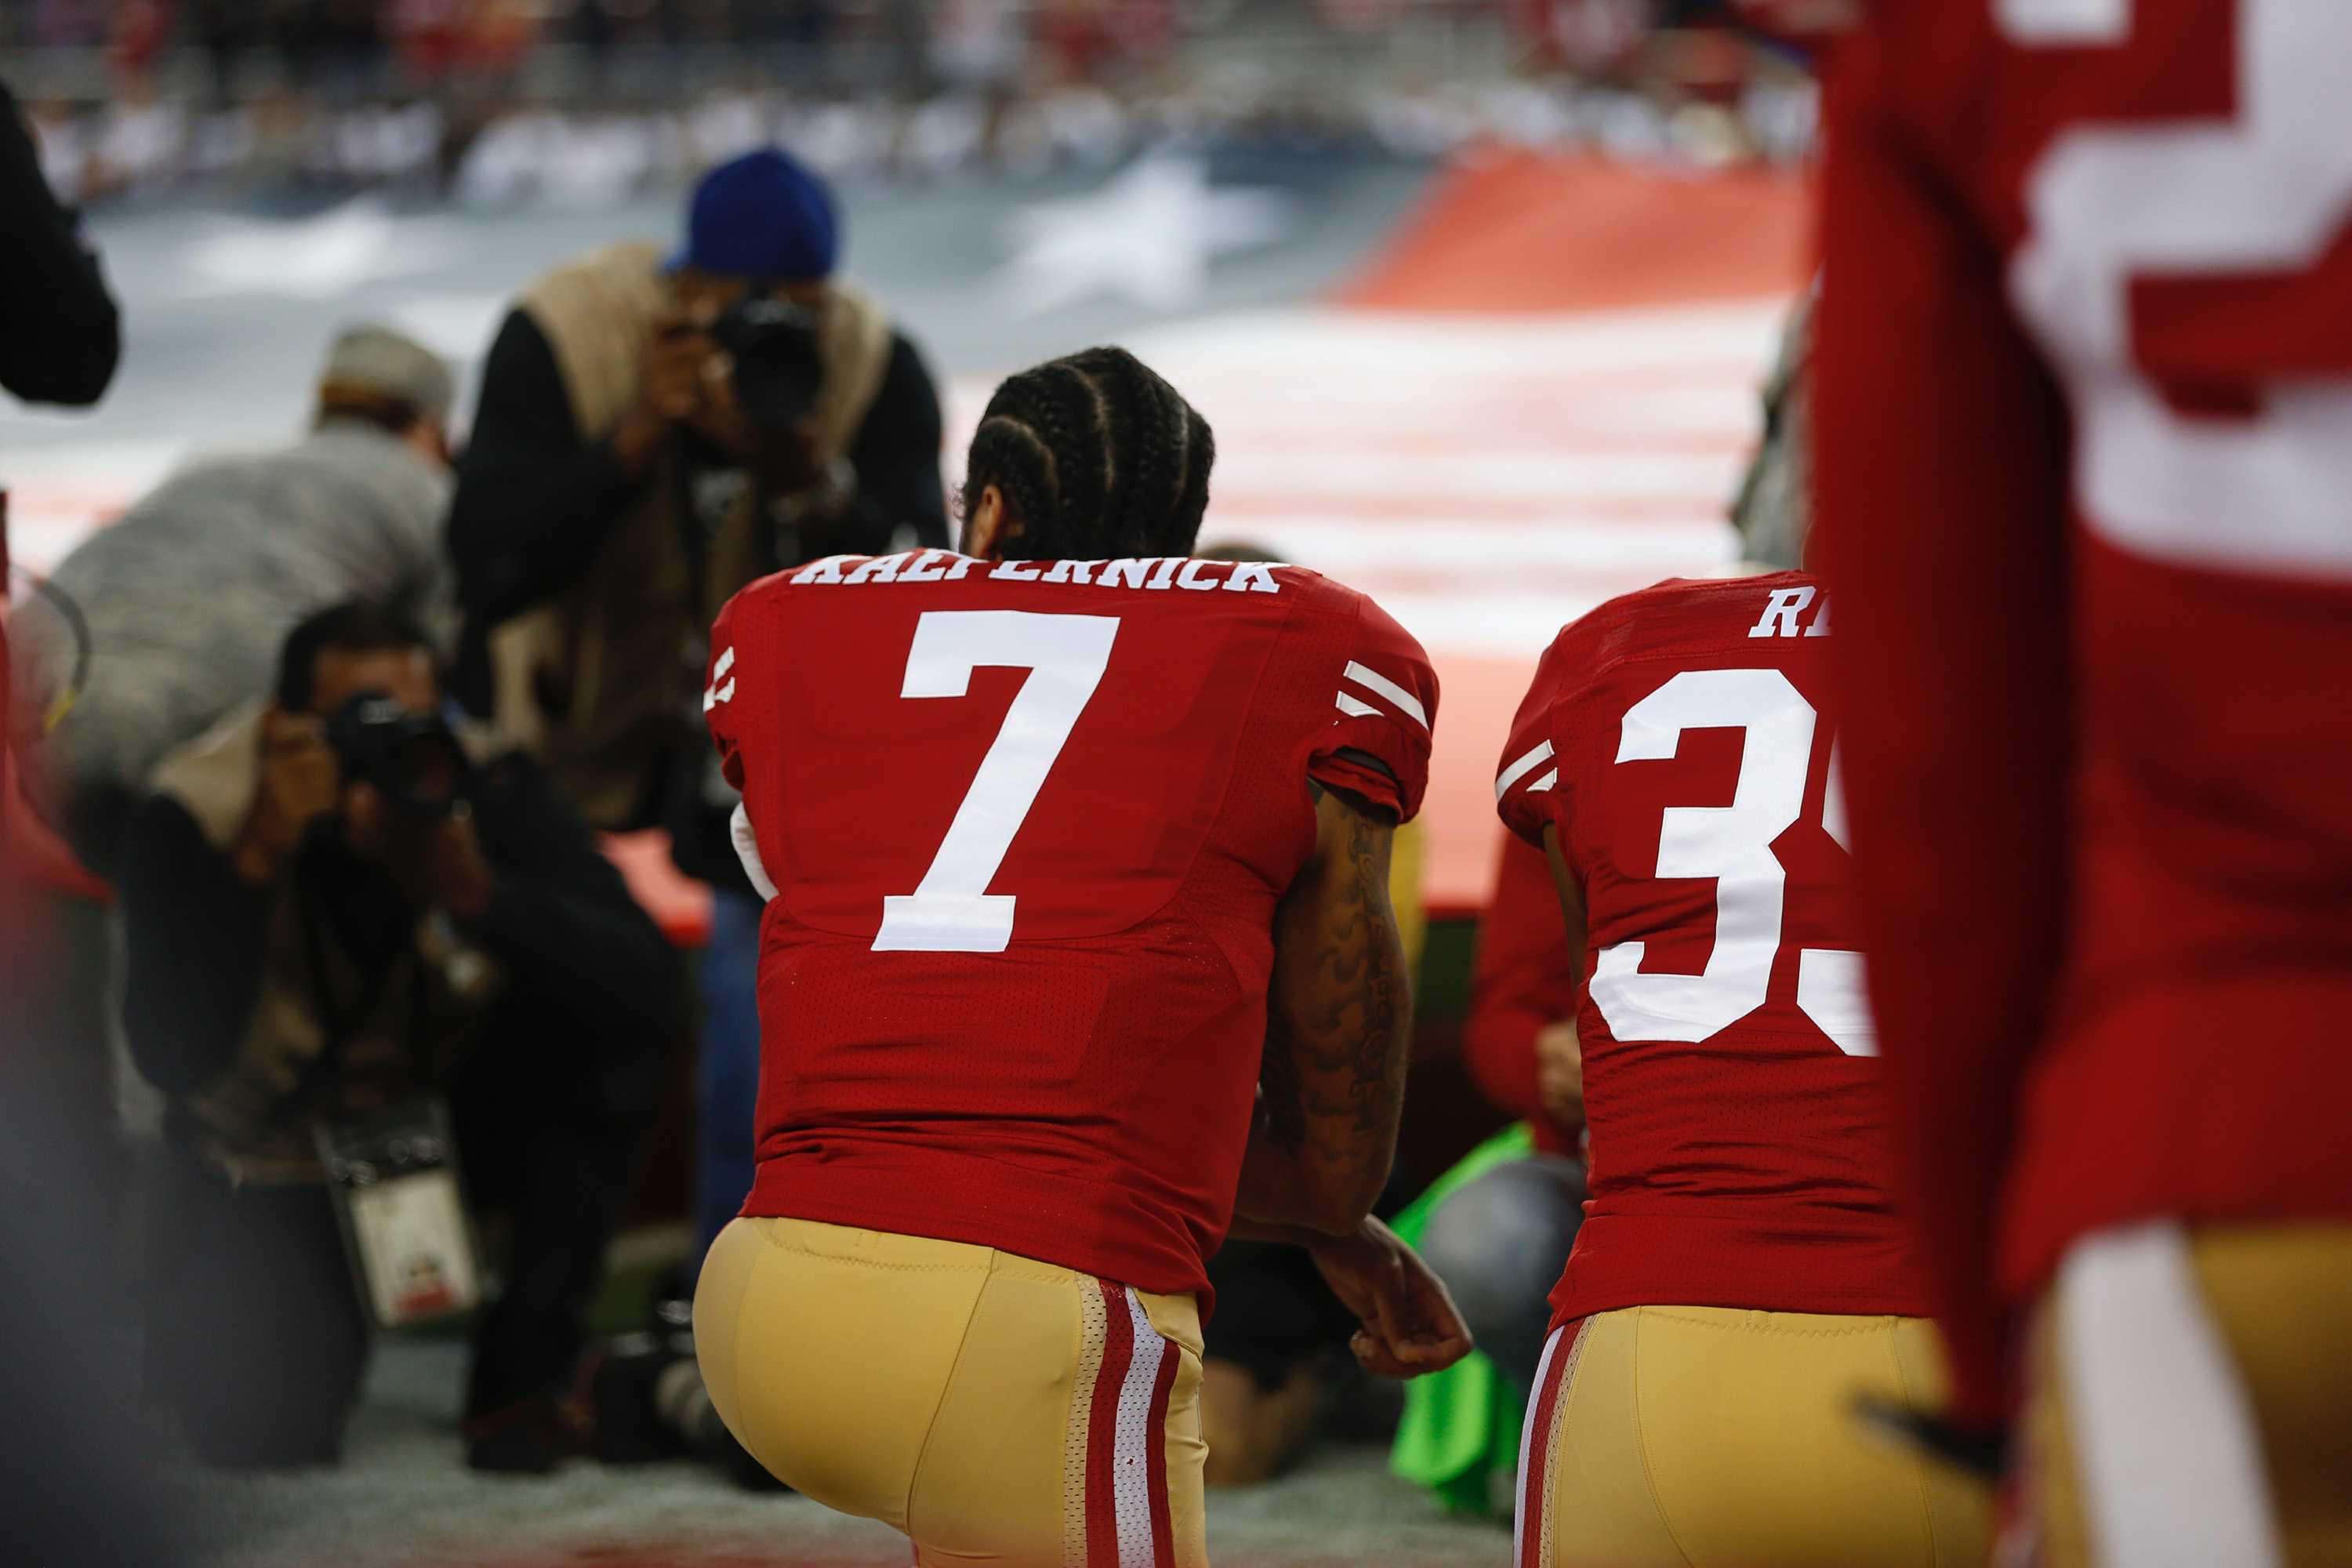 Kneeling for change and Nike's bold move to back Kaepernick